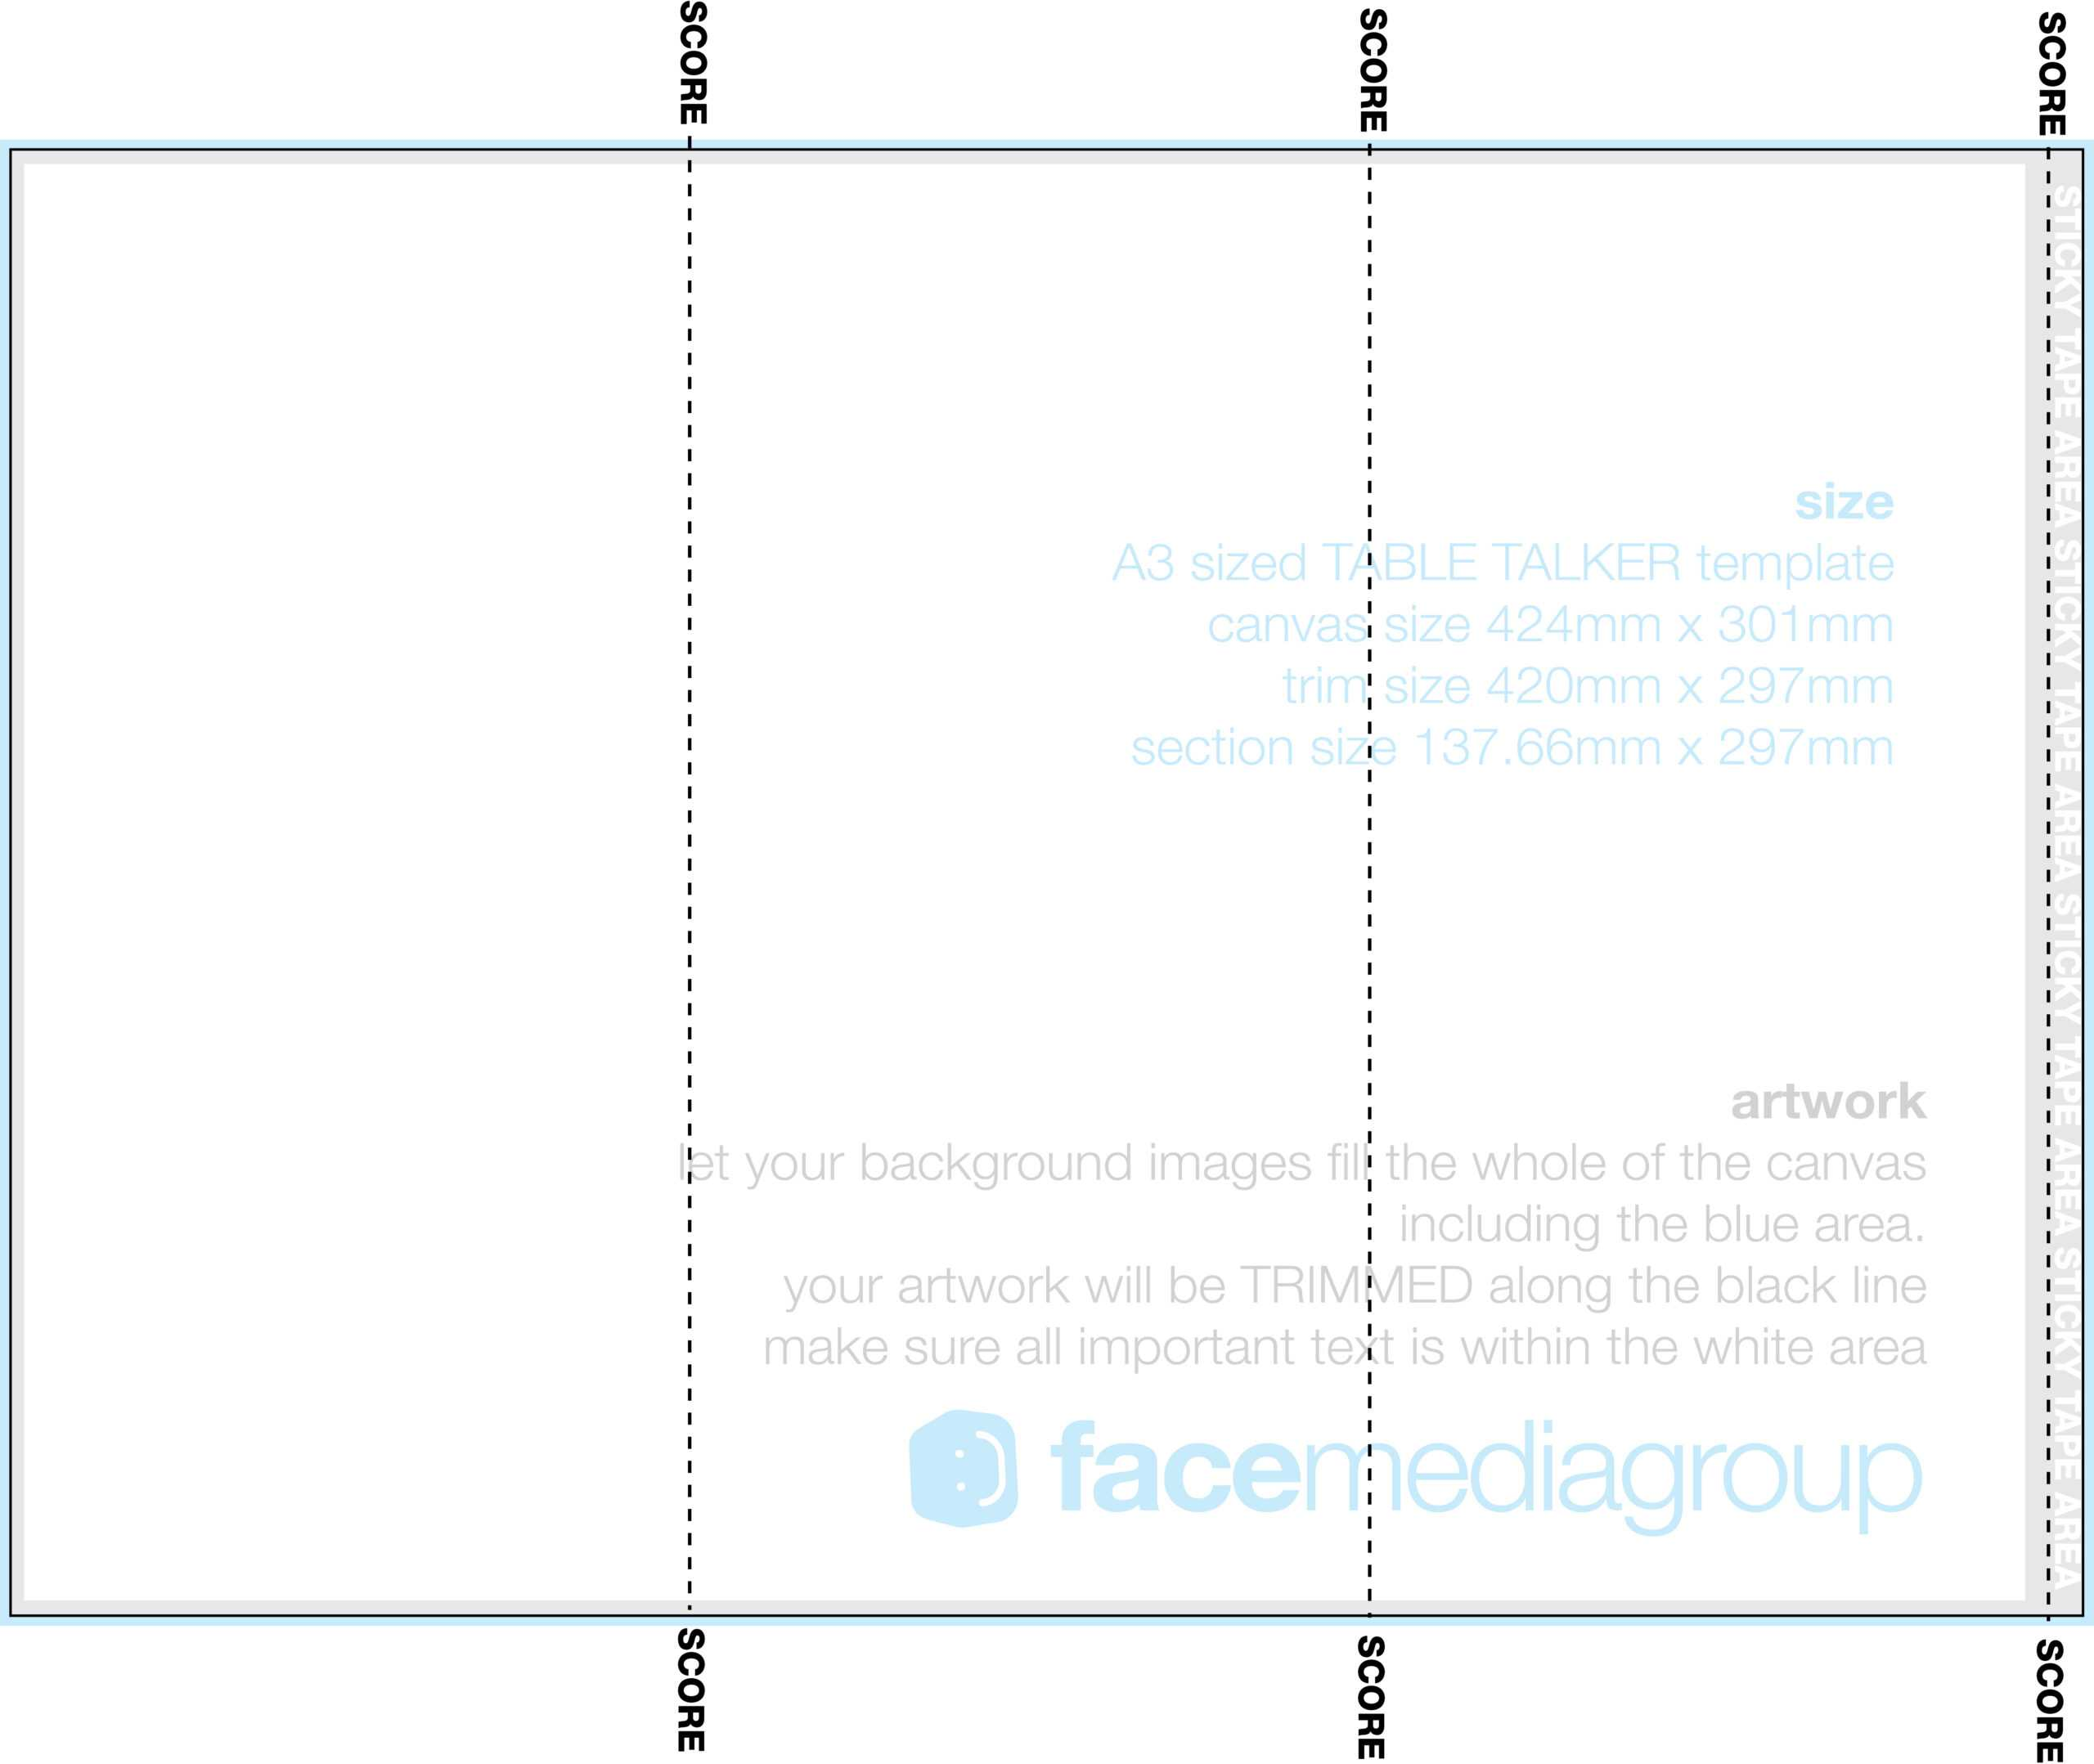 A3 Tri Fold Table Talker Template | Photo Page - Everystockphoto With Regard To Tri Fold Tent Card Template